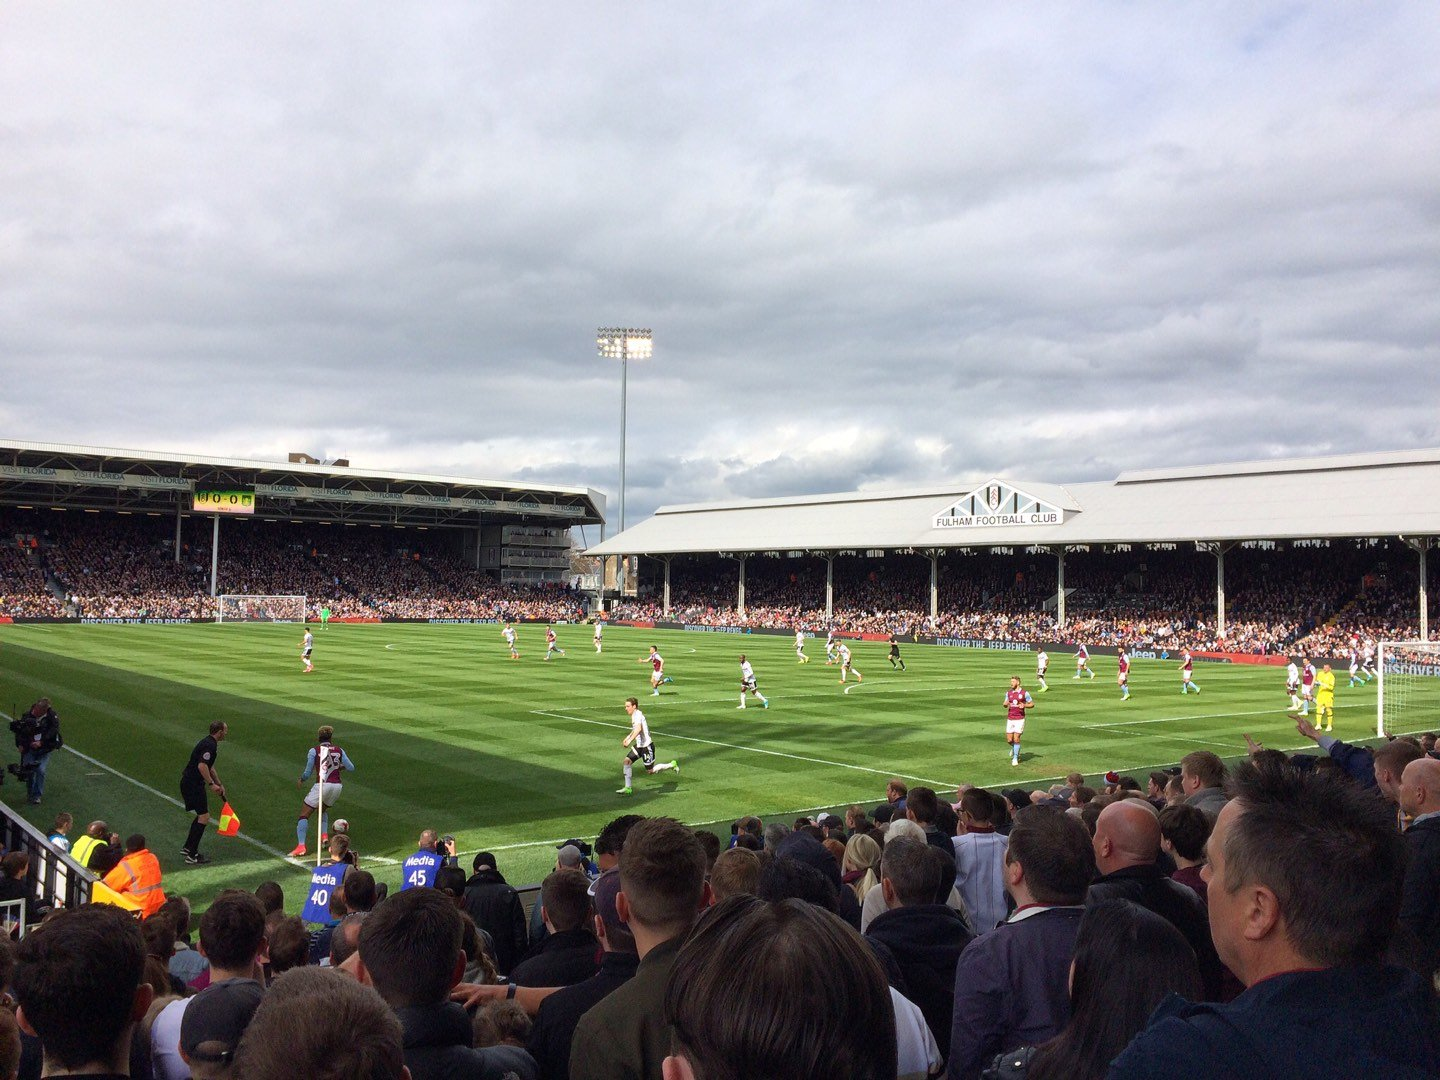 Craven Cottage Section P7 Row O Seat 155